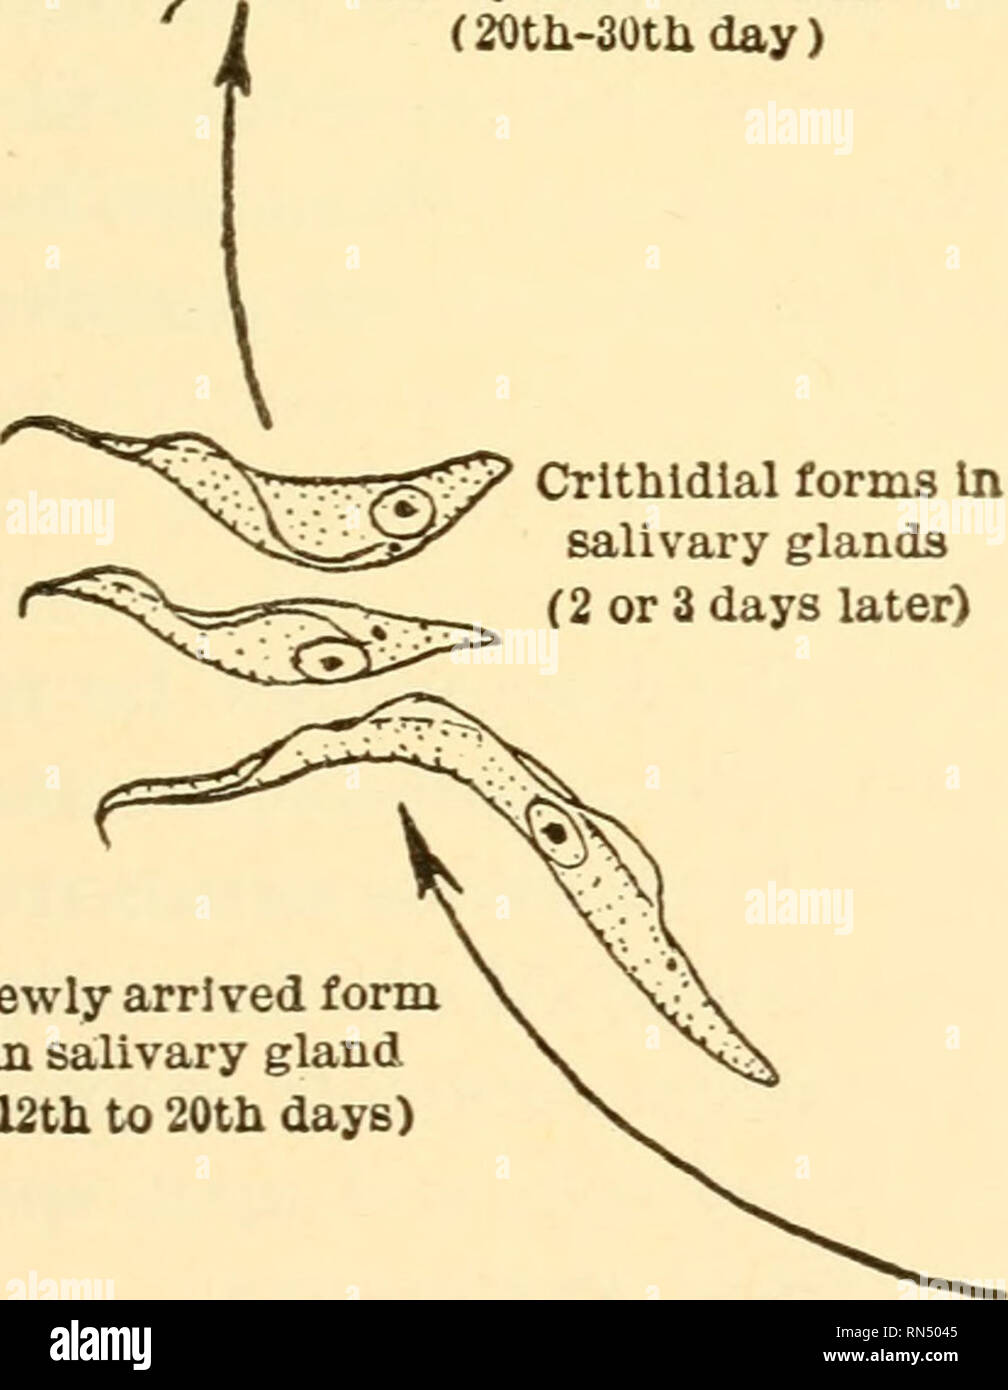 hight resolution of tsetse fly transmission by bite of tsetse fly orms in salivary glands ready for re infection 20th 30thday crithldlal forms in salivary glands 2 or 3 days